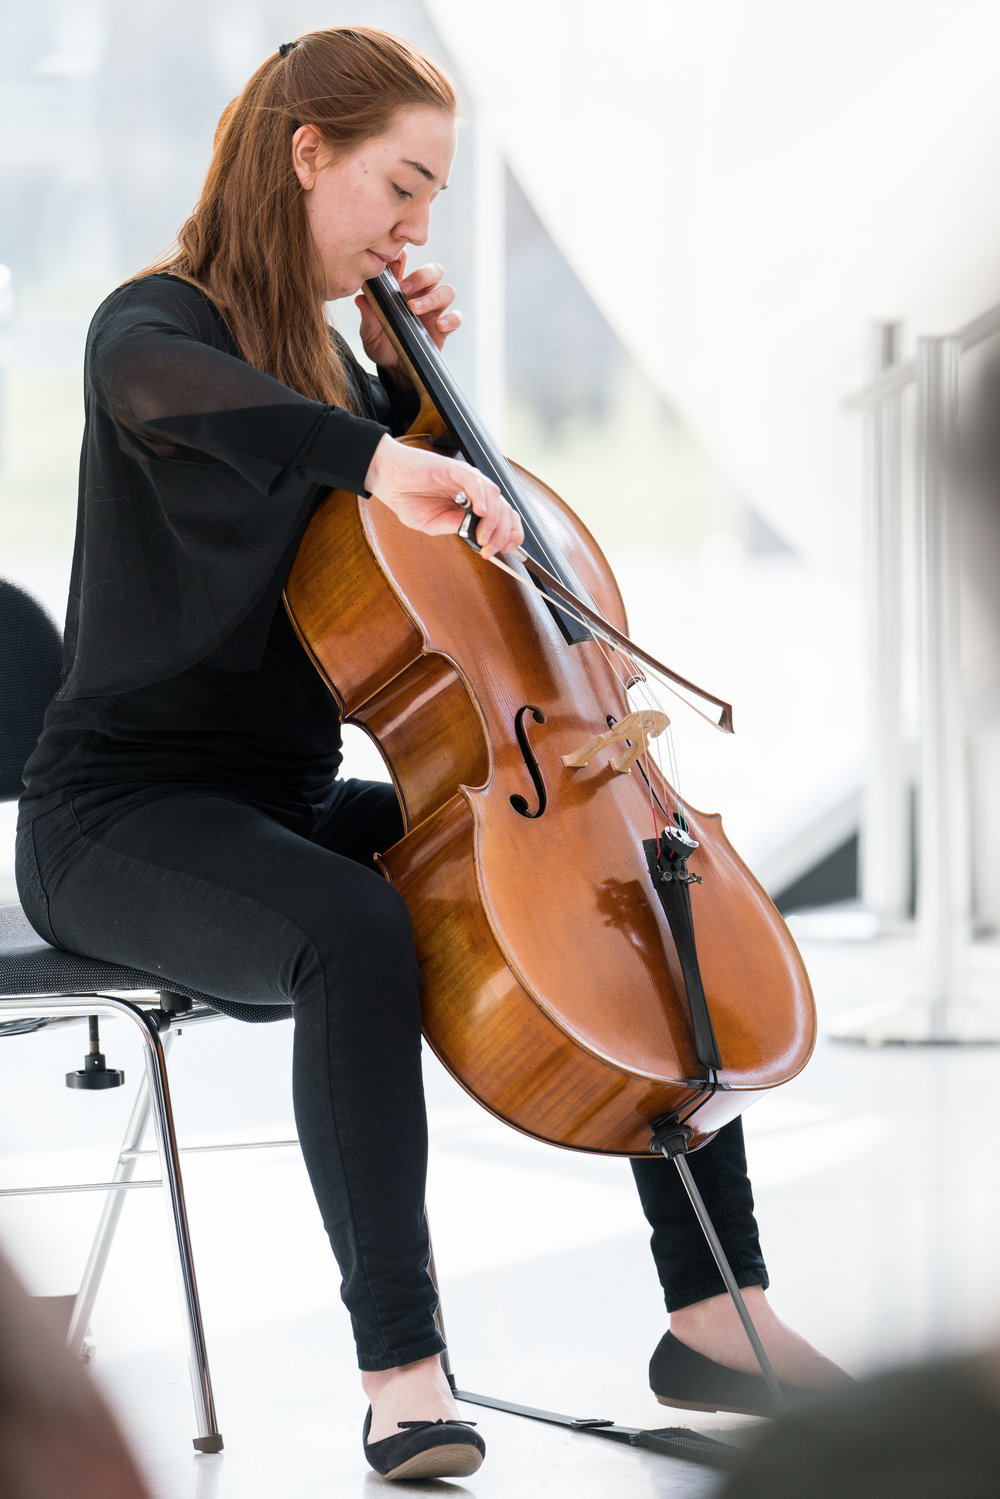 Konzert am Mittag - Cello20180206_025-036.jpg